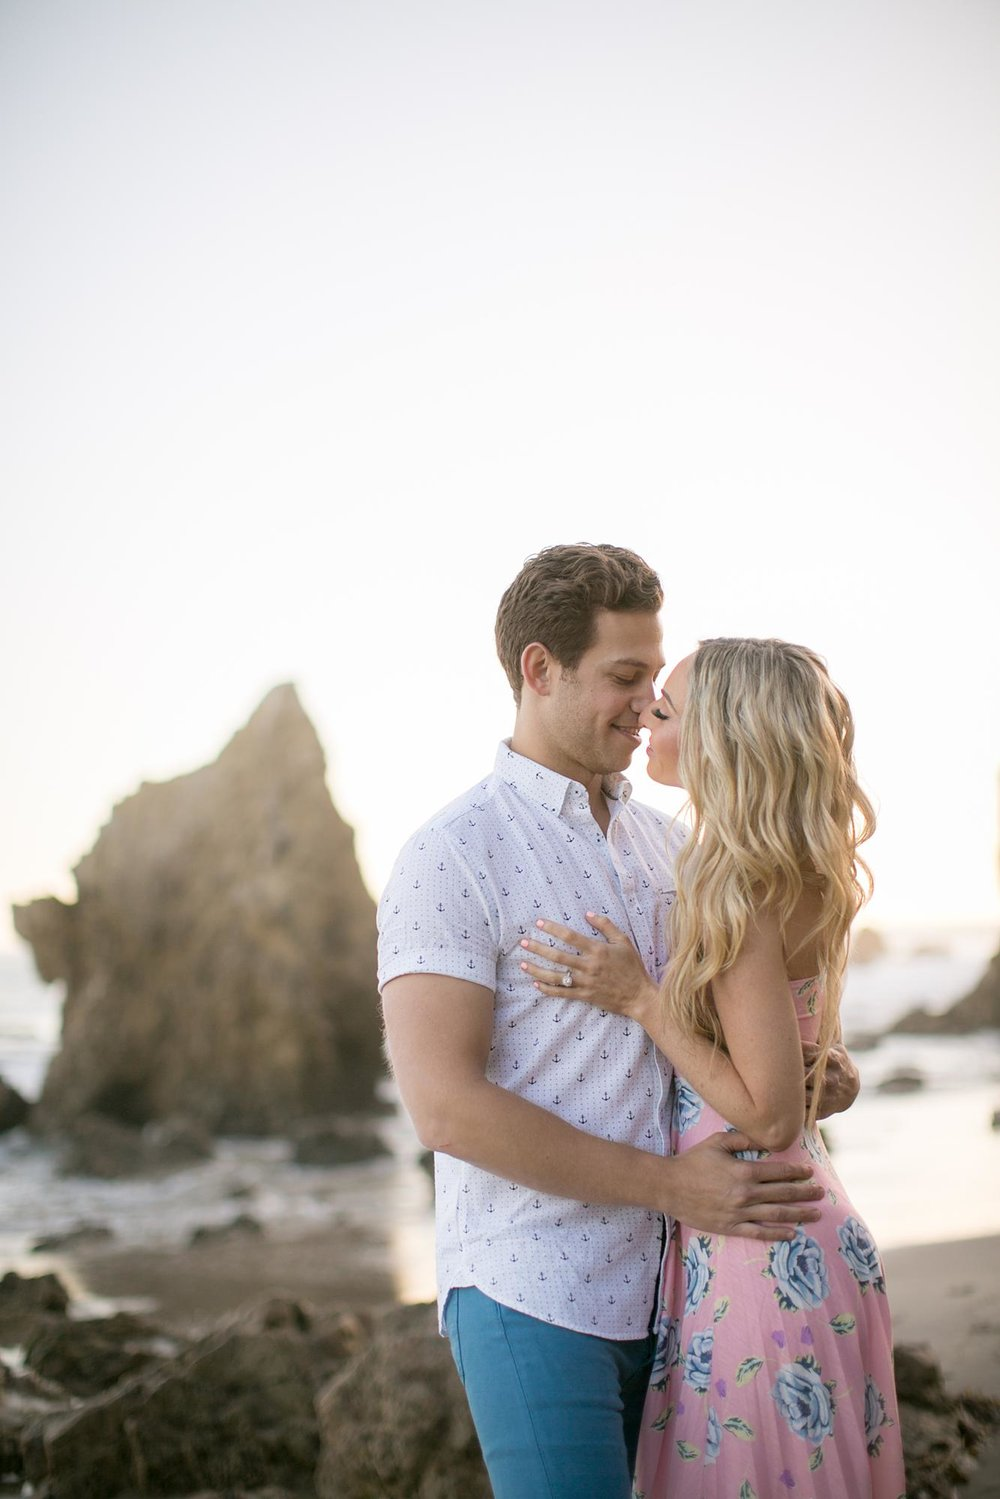 El Matador Beach Engagement | Miki & Sonja Photography | mikiandsonja.com